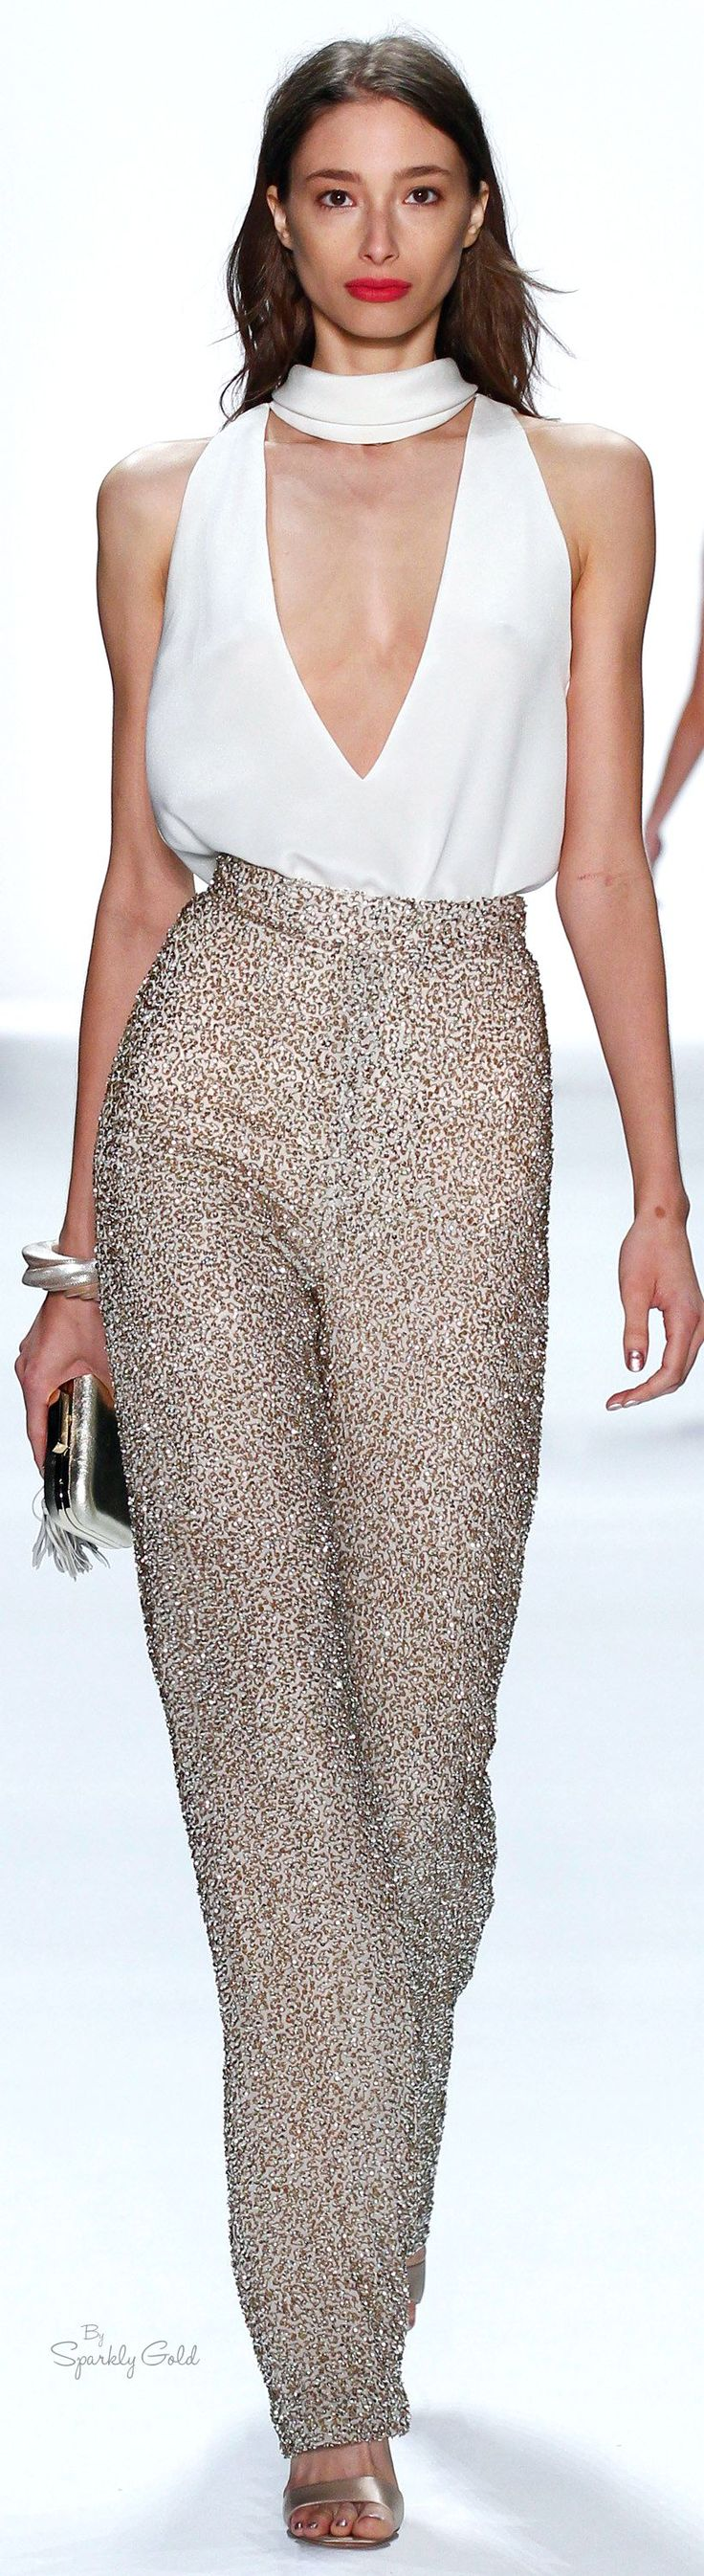 "Badgley Mischka Spring 2016 ""And the LORD said to Moses, ""Go to the people and consecrate them today and tomorrow. Have them wash their clothes."" Exodus 19:10"